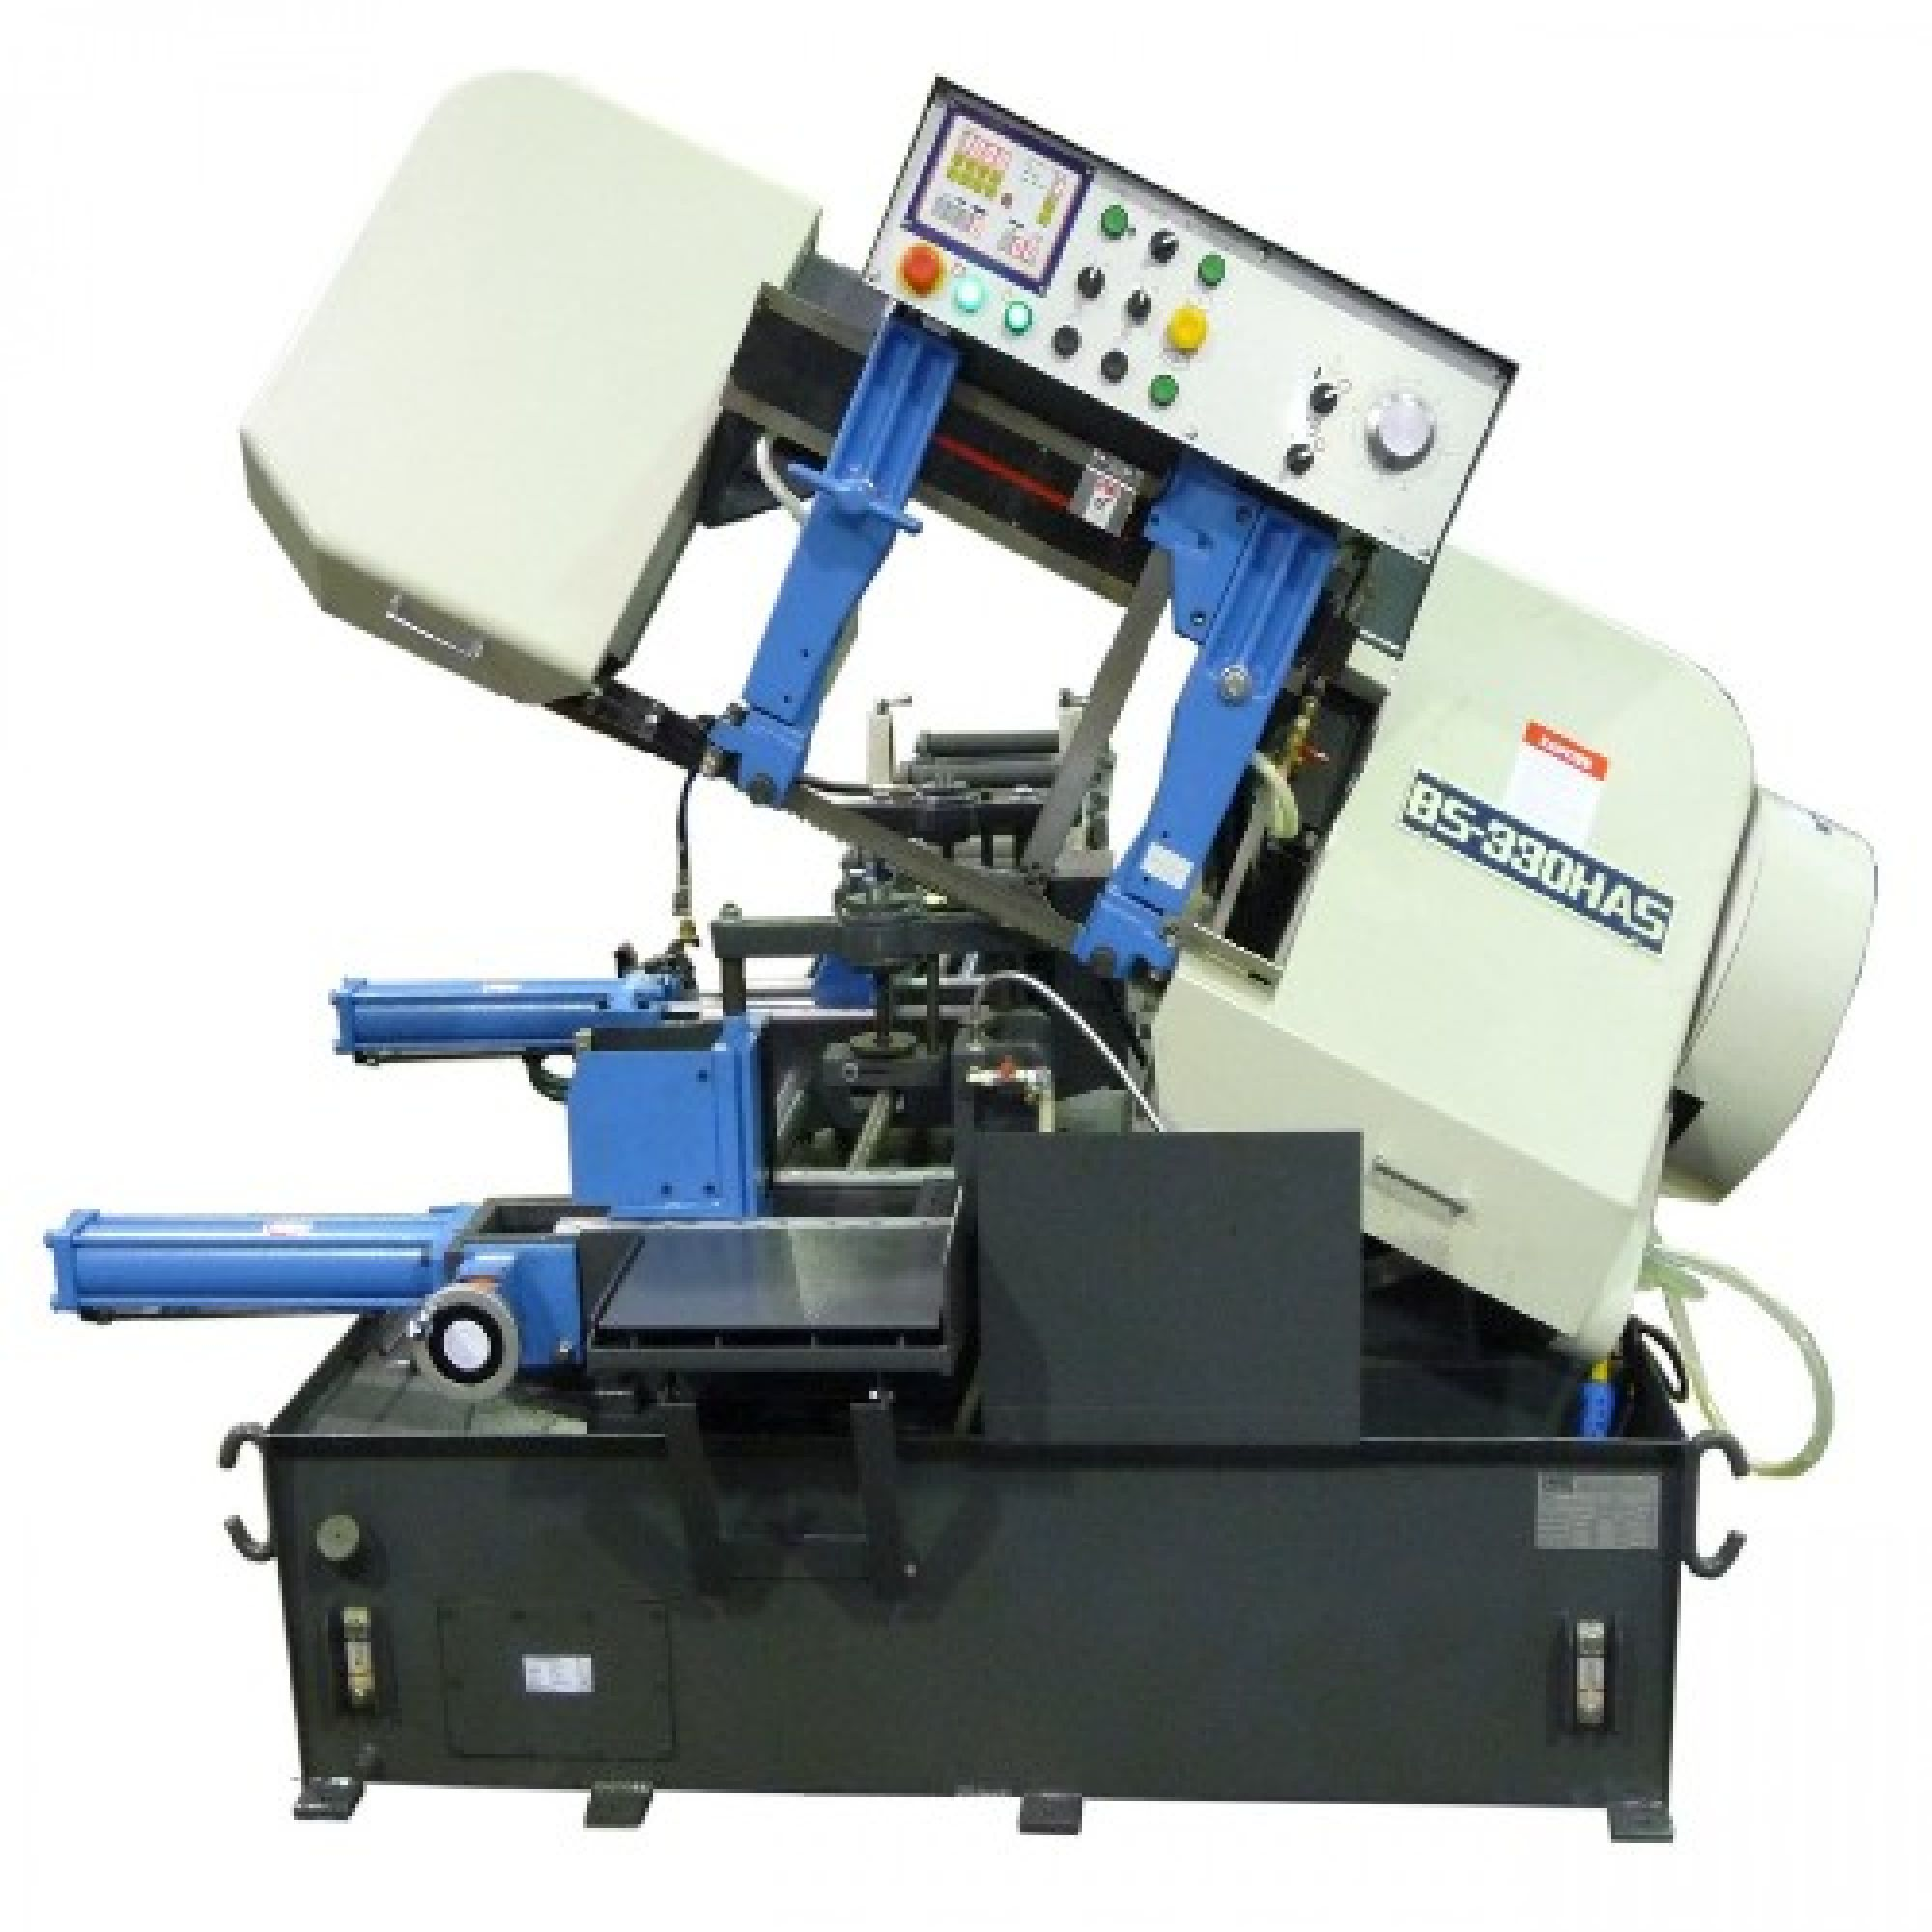 SDBS 330HAS Automatic Bandsaw